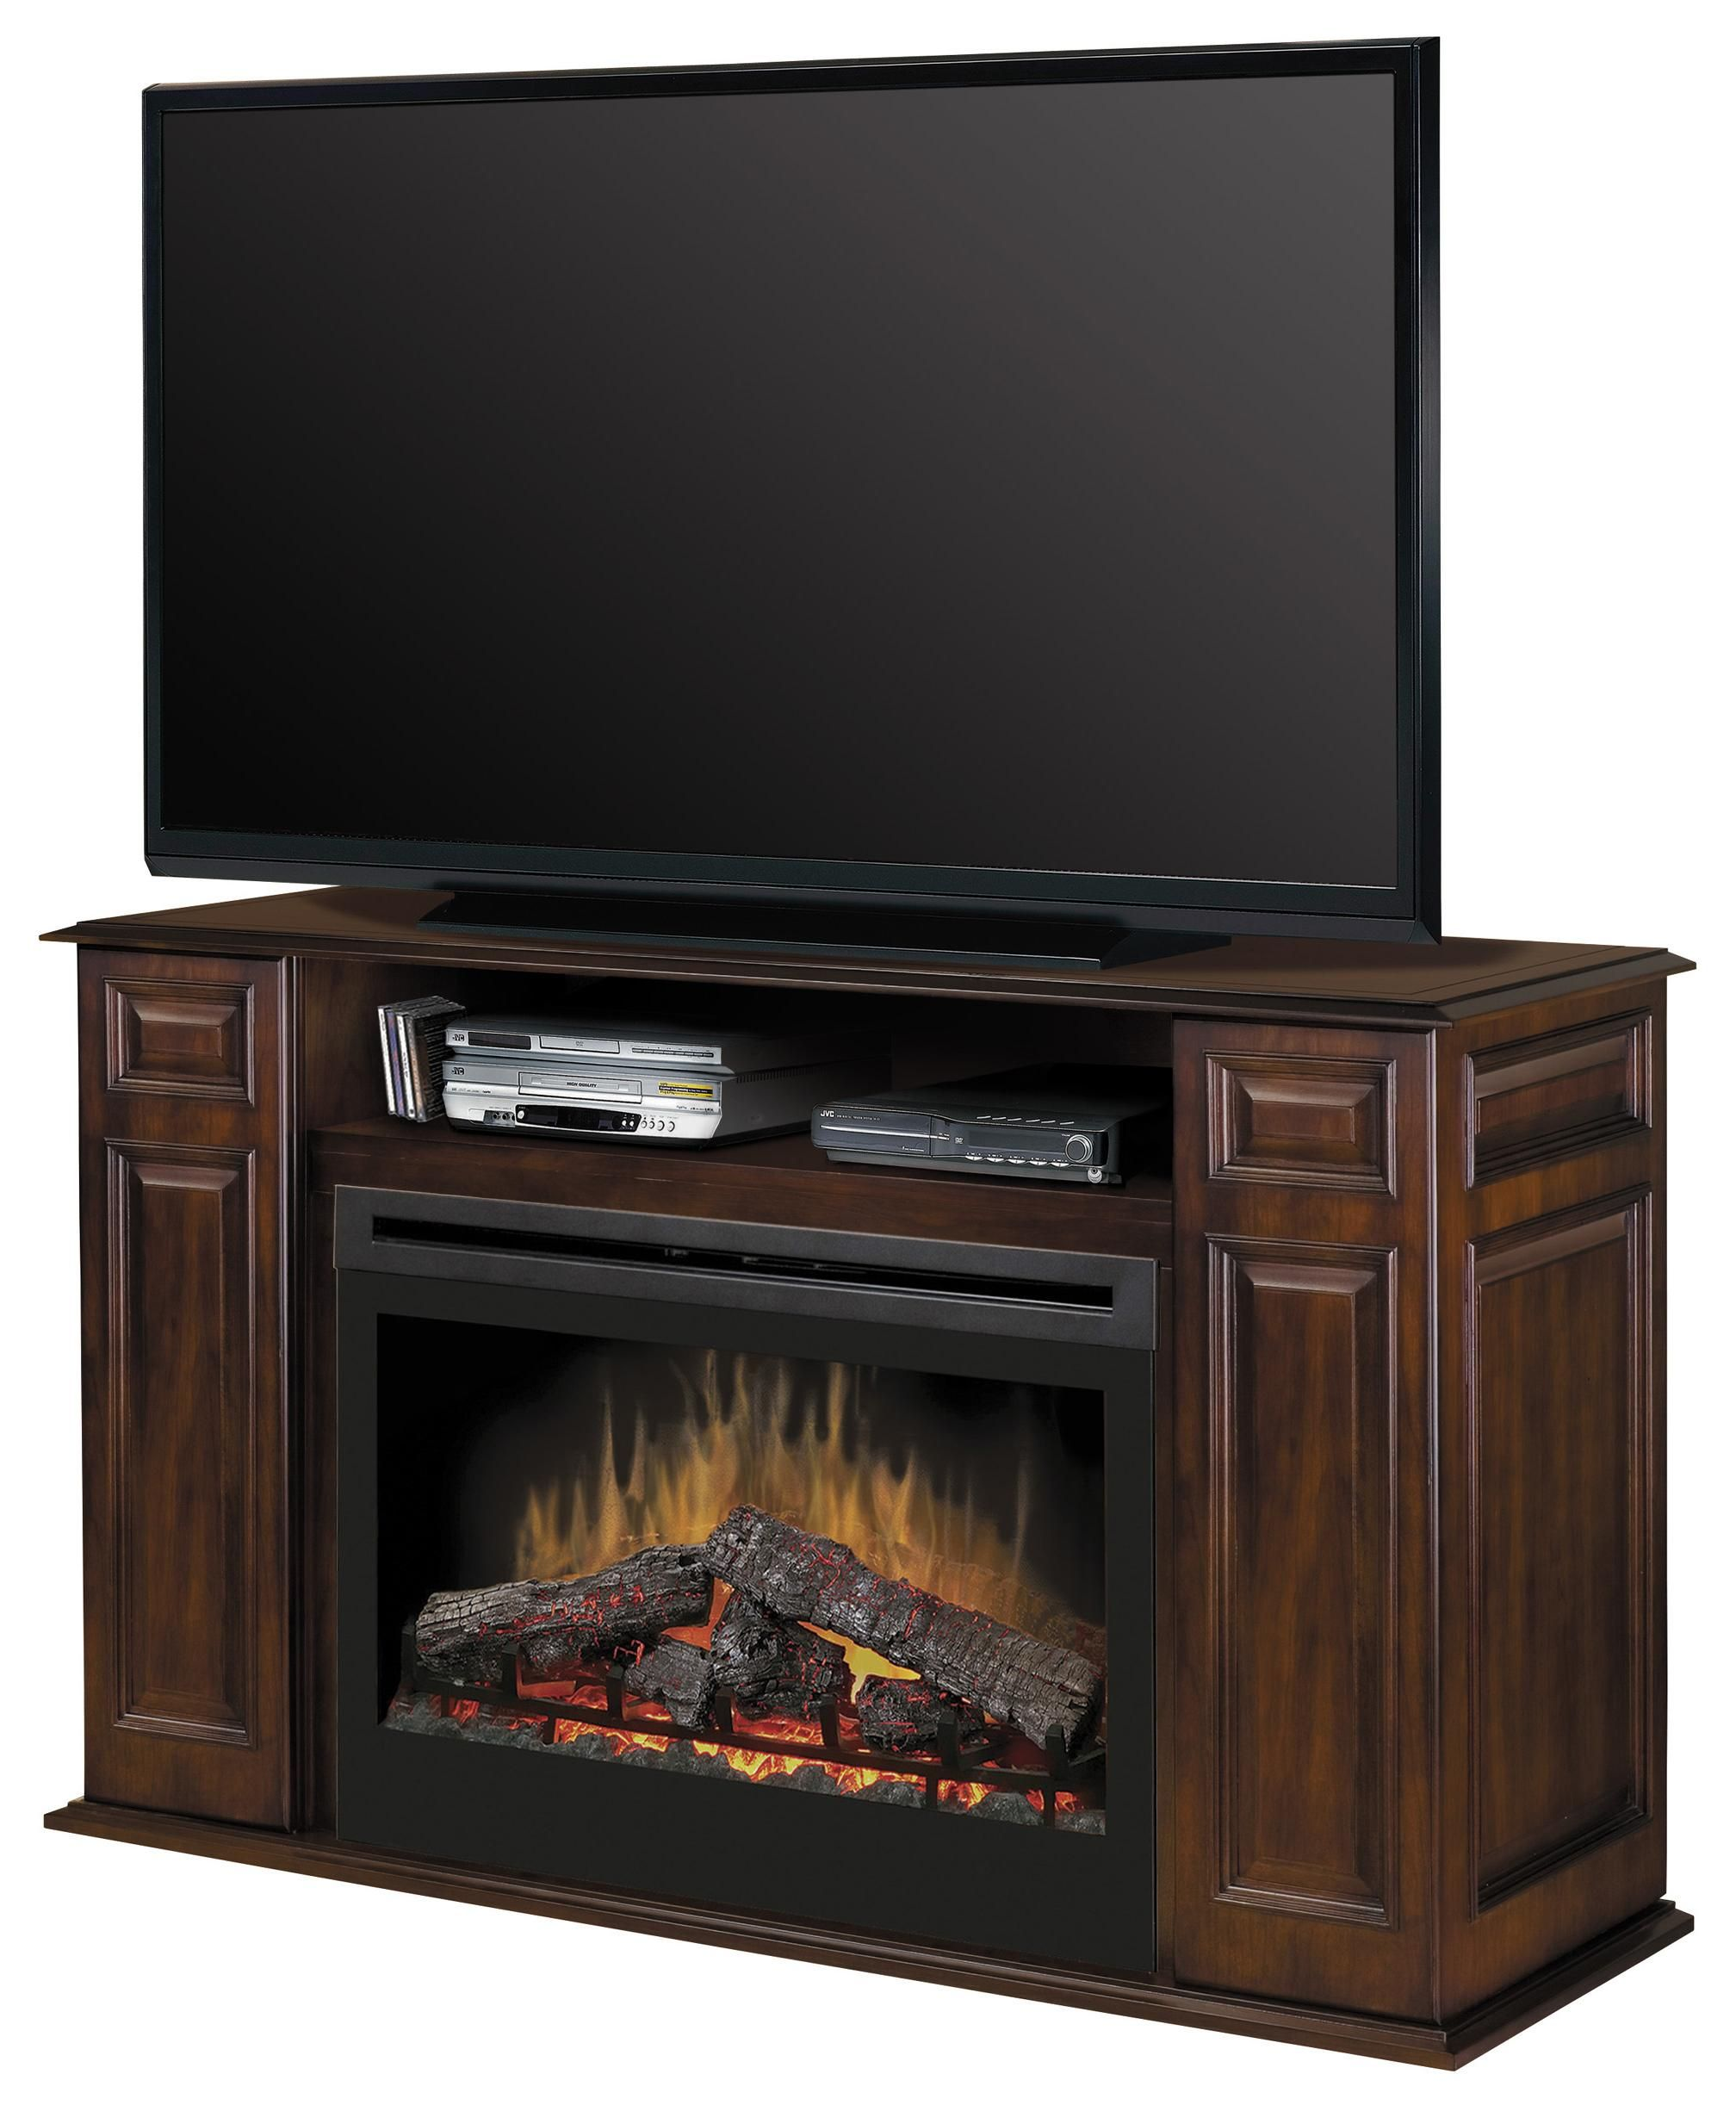 up output photo whalen fireplace for stock console cherry media inch tvs dark to p fireplaces weathered wood